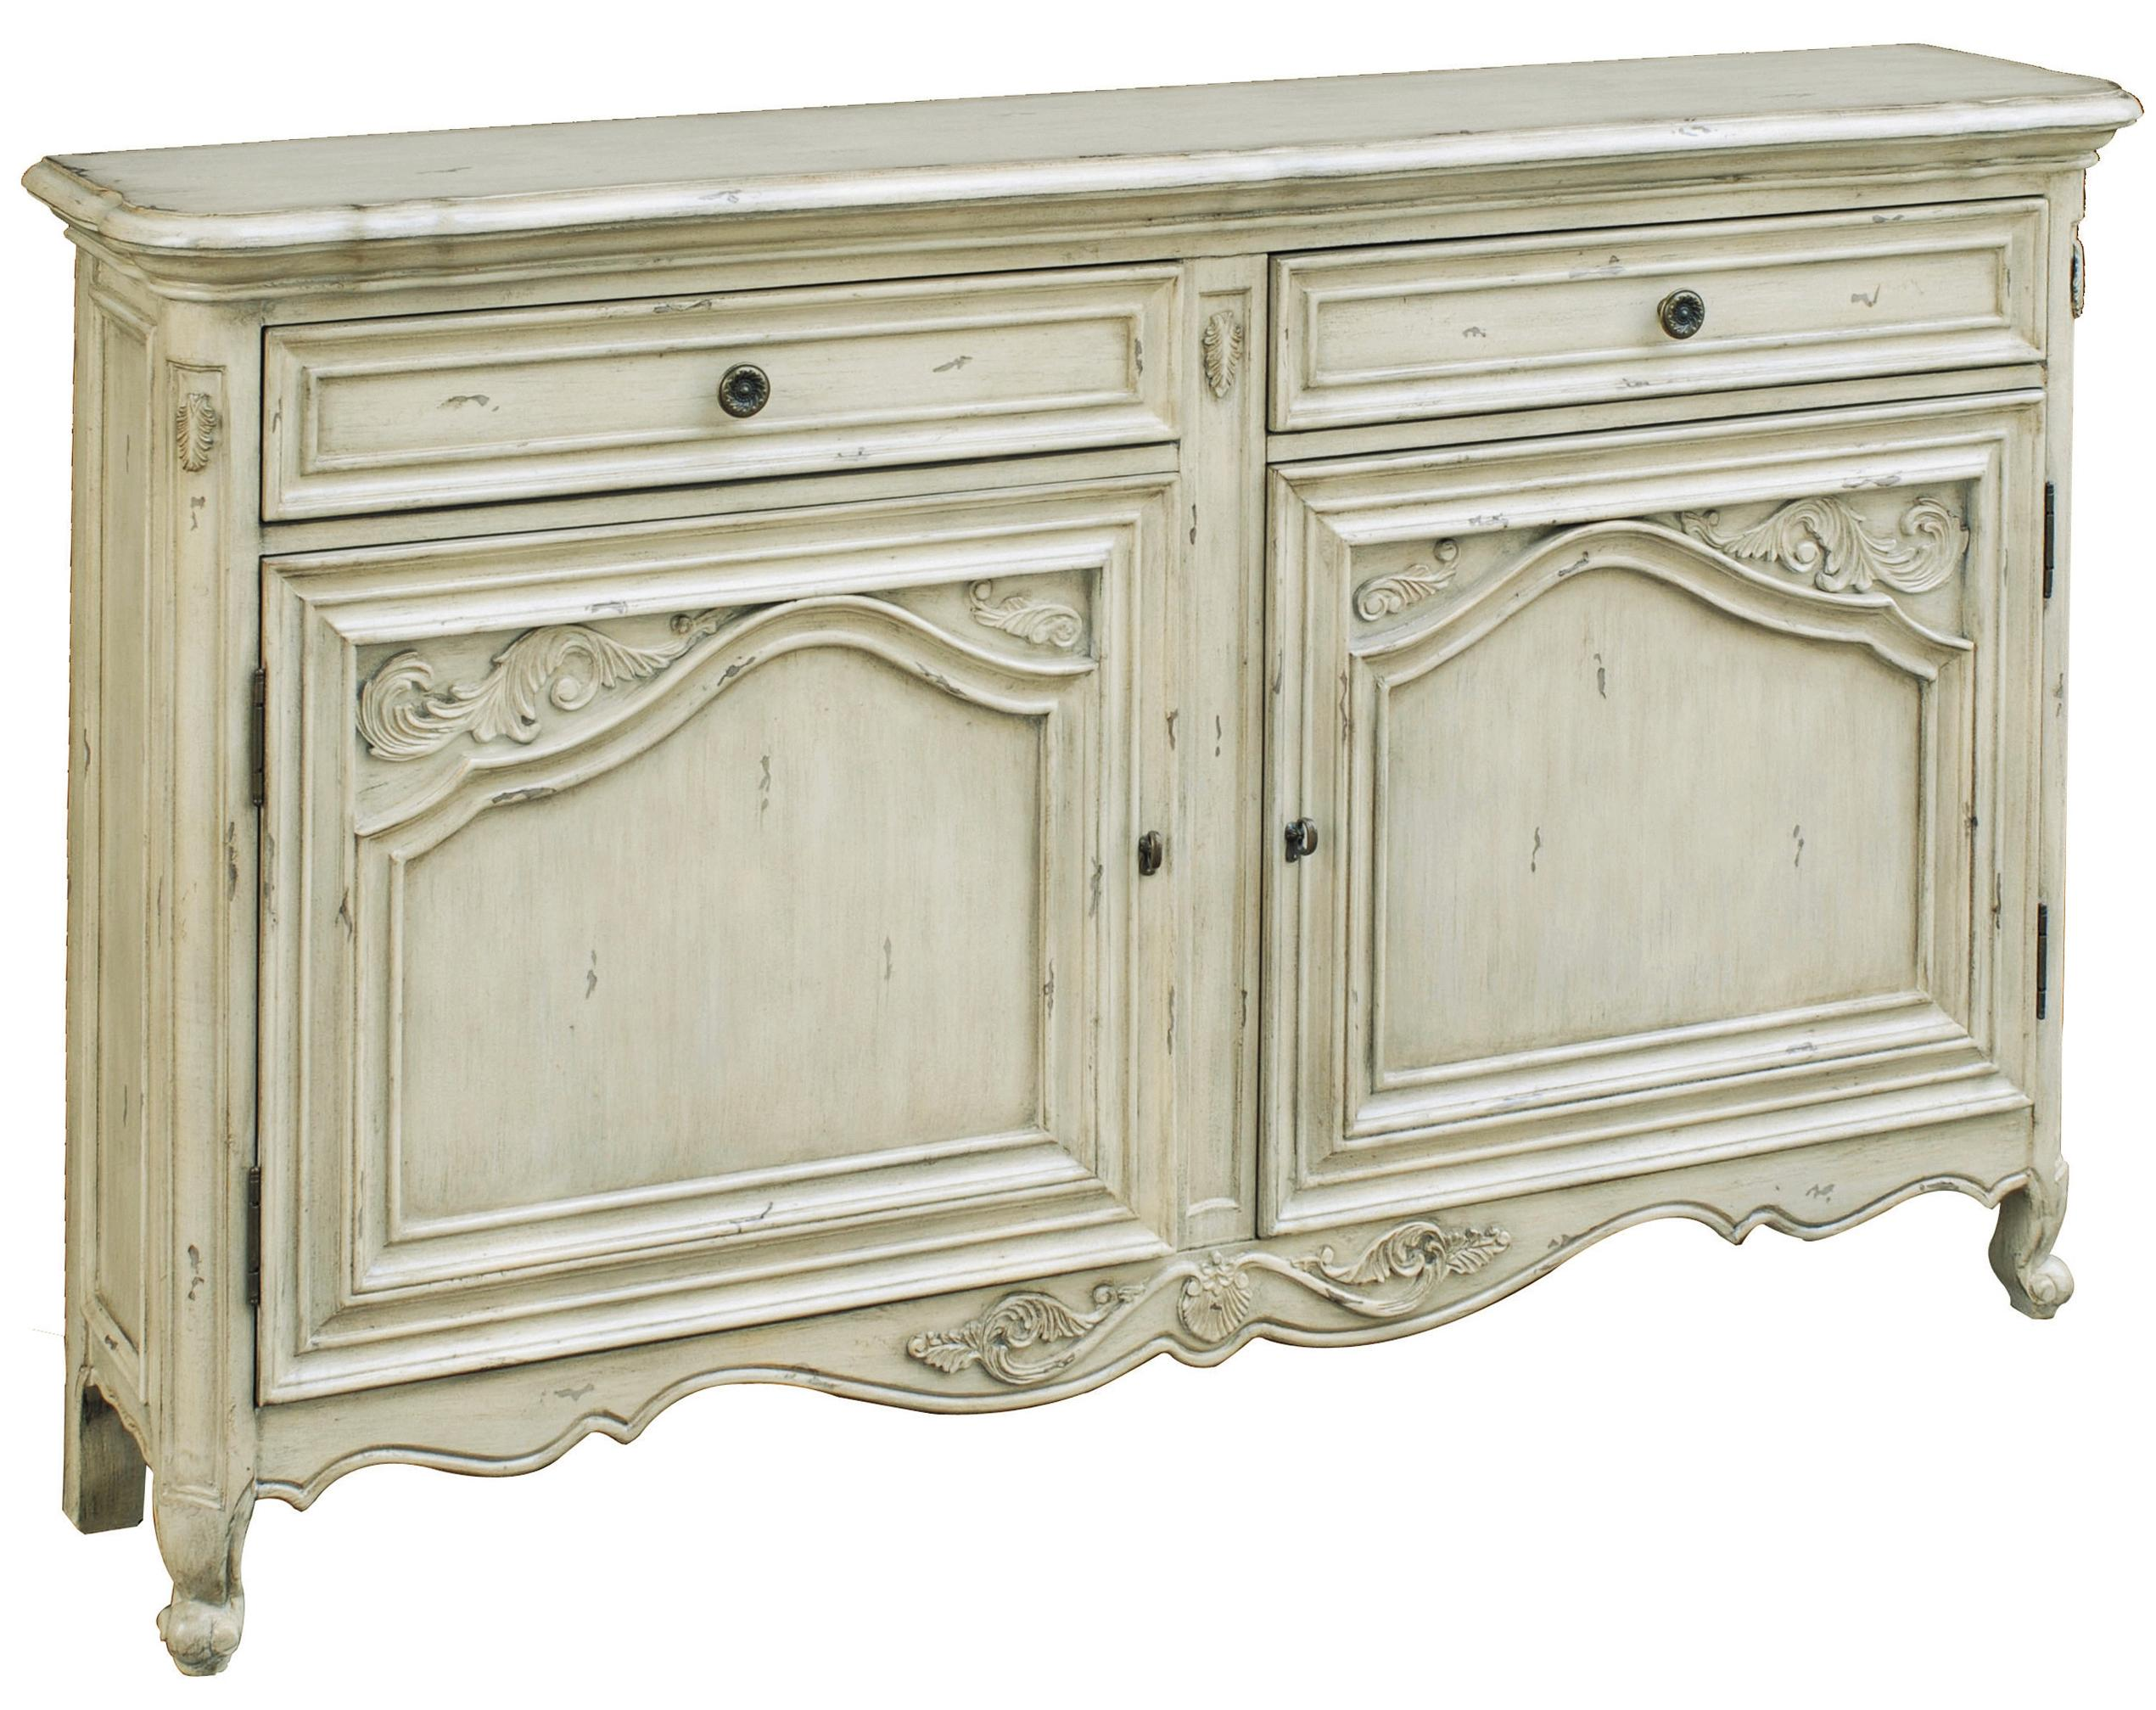 Pulaski Furniture Accents 2 Door Accent Cabinet - Item Number: 641052